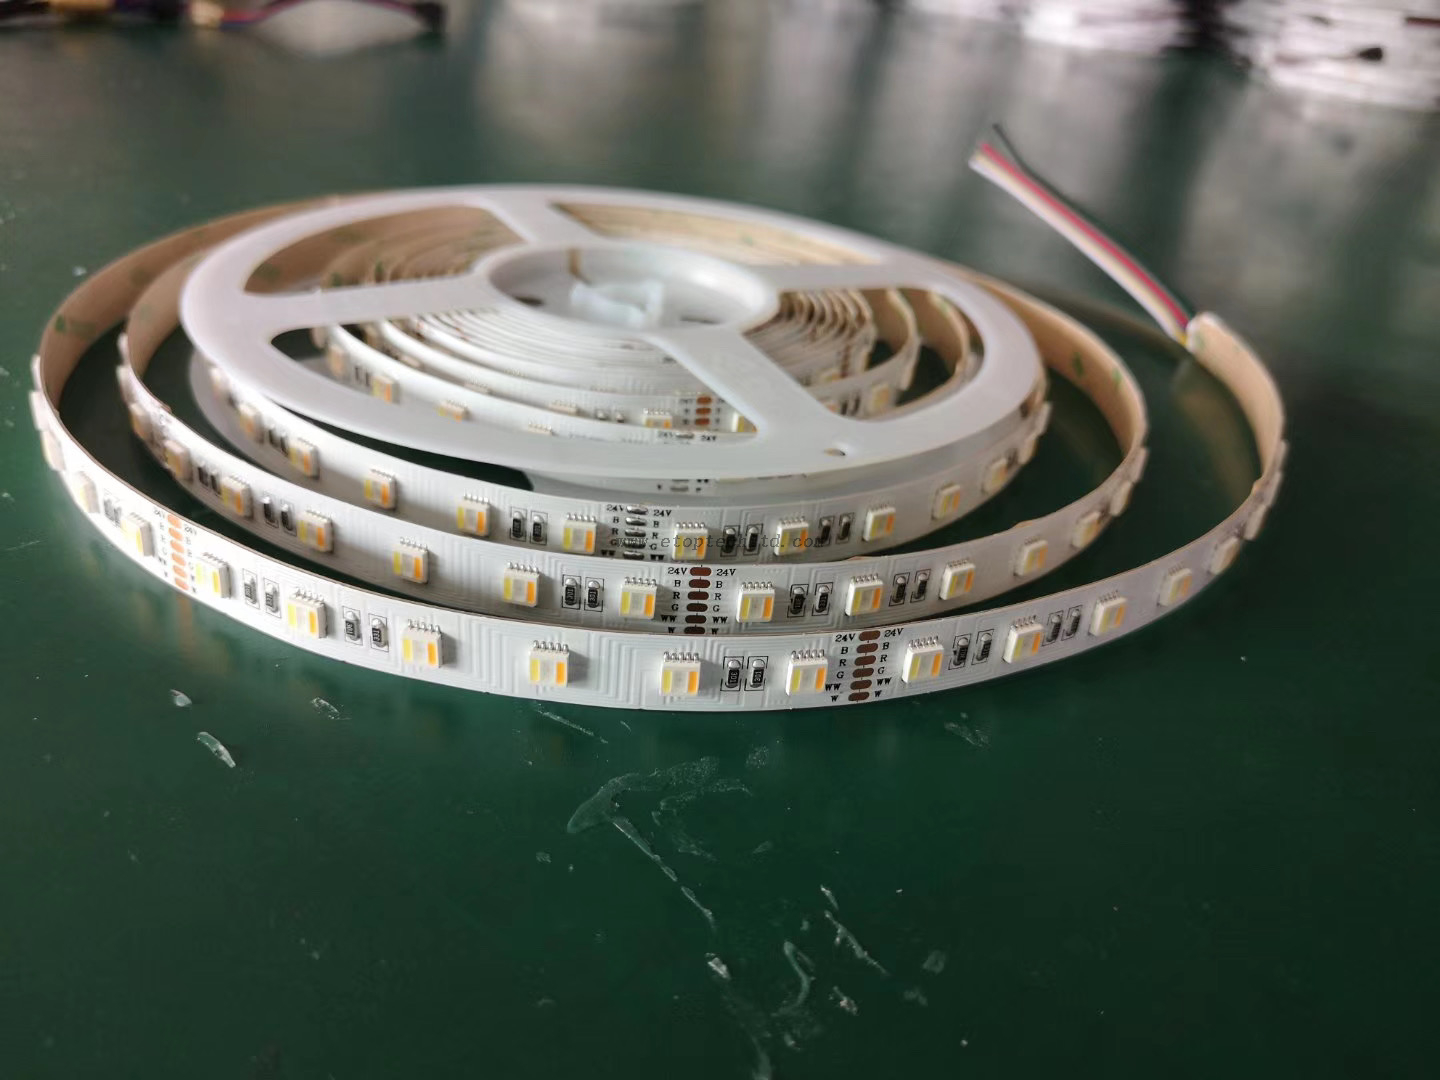 RGBWW 5 in 1 LED Flexible Strips RGBWW LED Strip 5050 60leds/m 5m/roll LED Flexible Rope